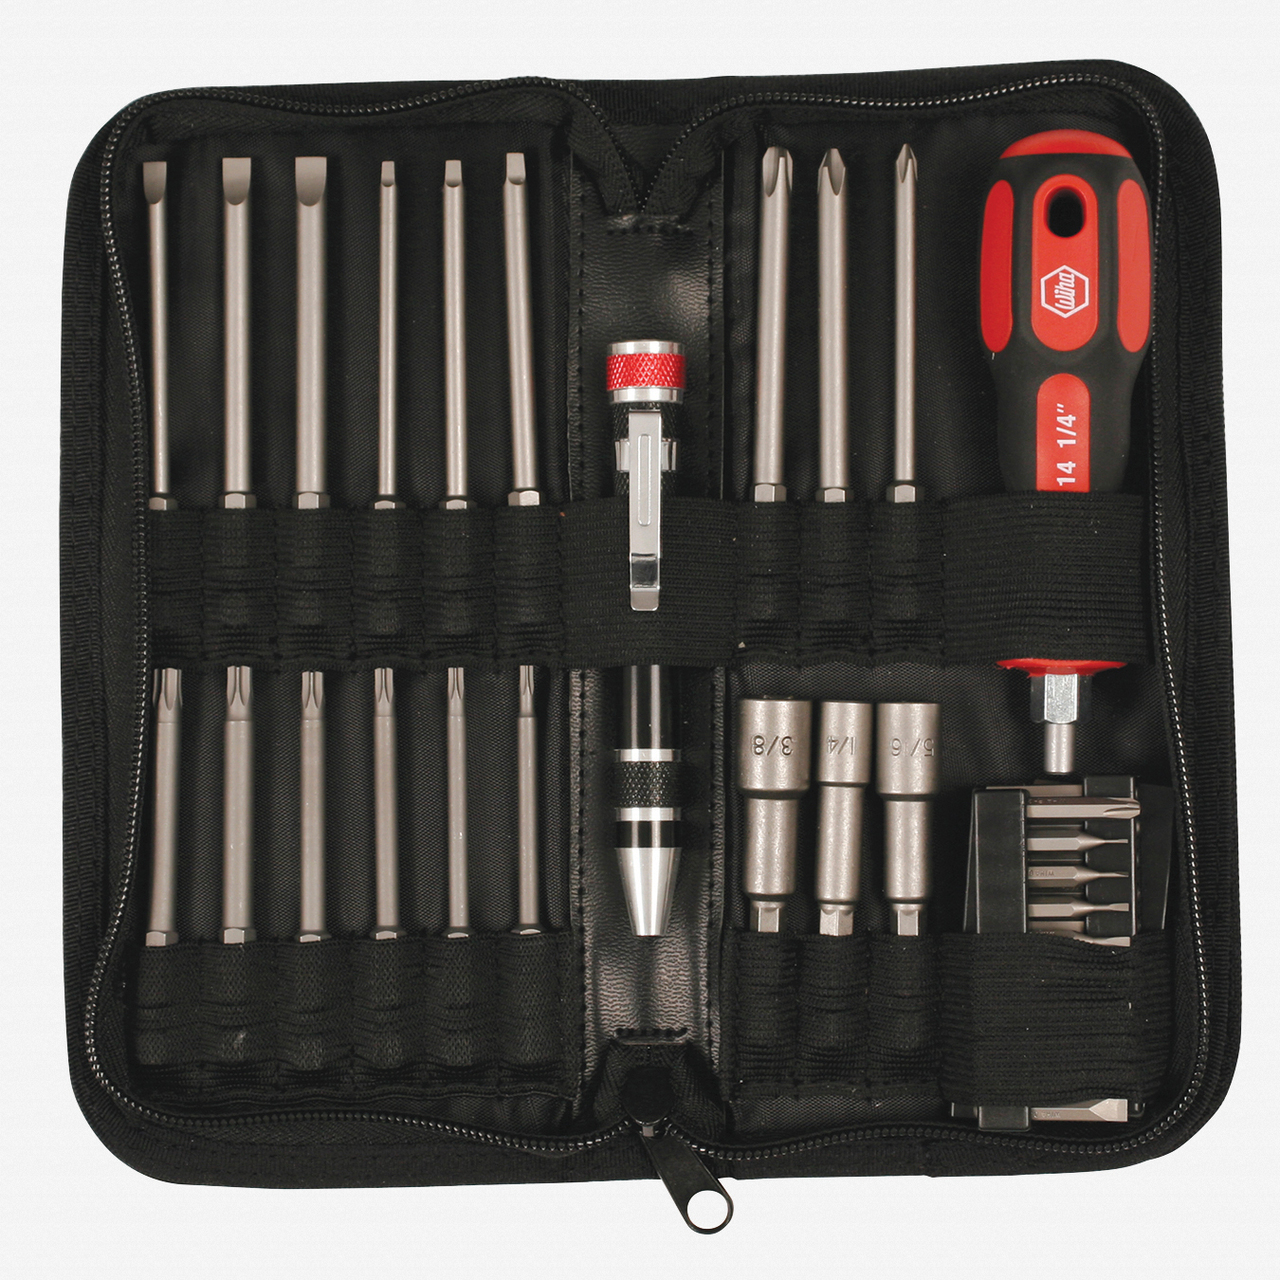 Wiha 76087 61 Piece Service Kit with Micro Bits, Power Blades, and Nut Setters - KC Tool